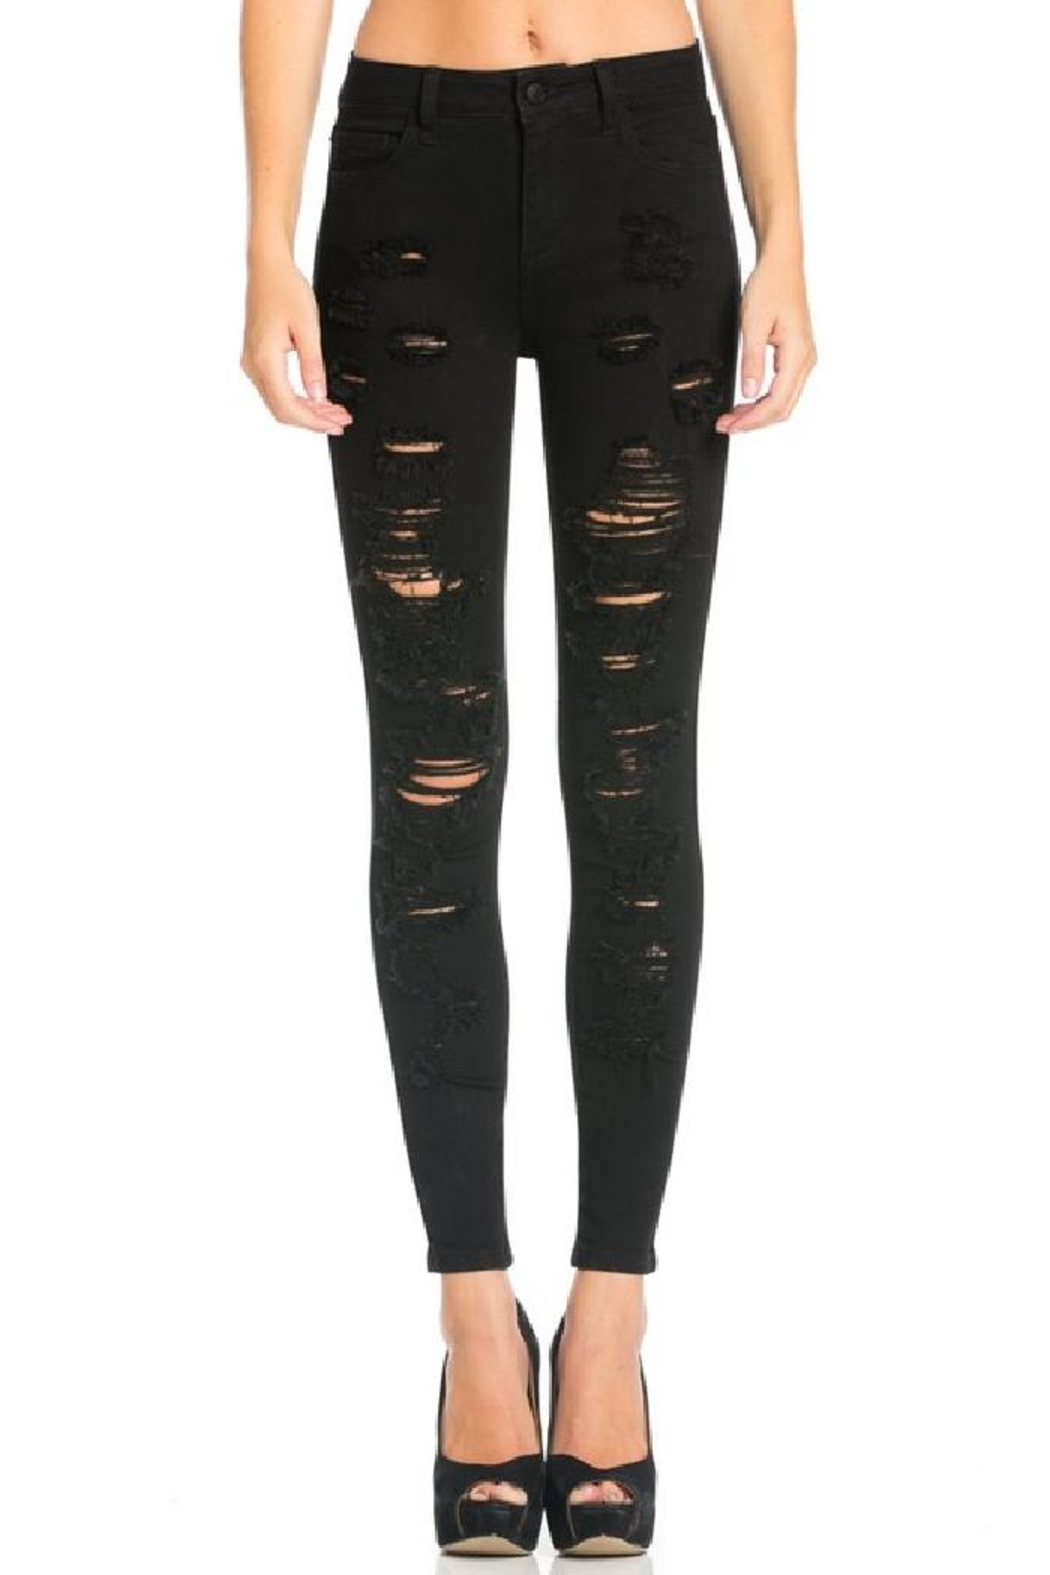 Cello Jeans Destroyed Black Skinny Jeans - Main Image